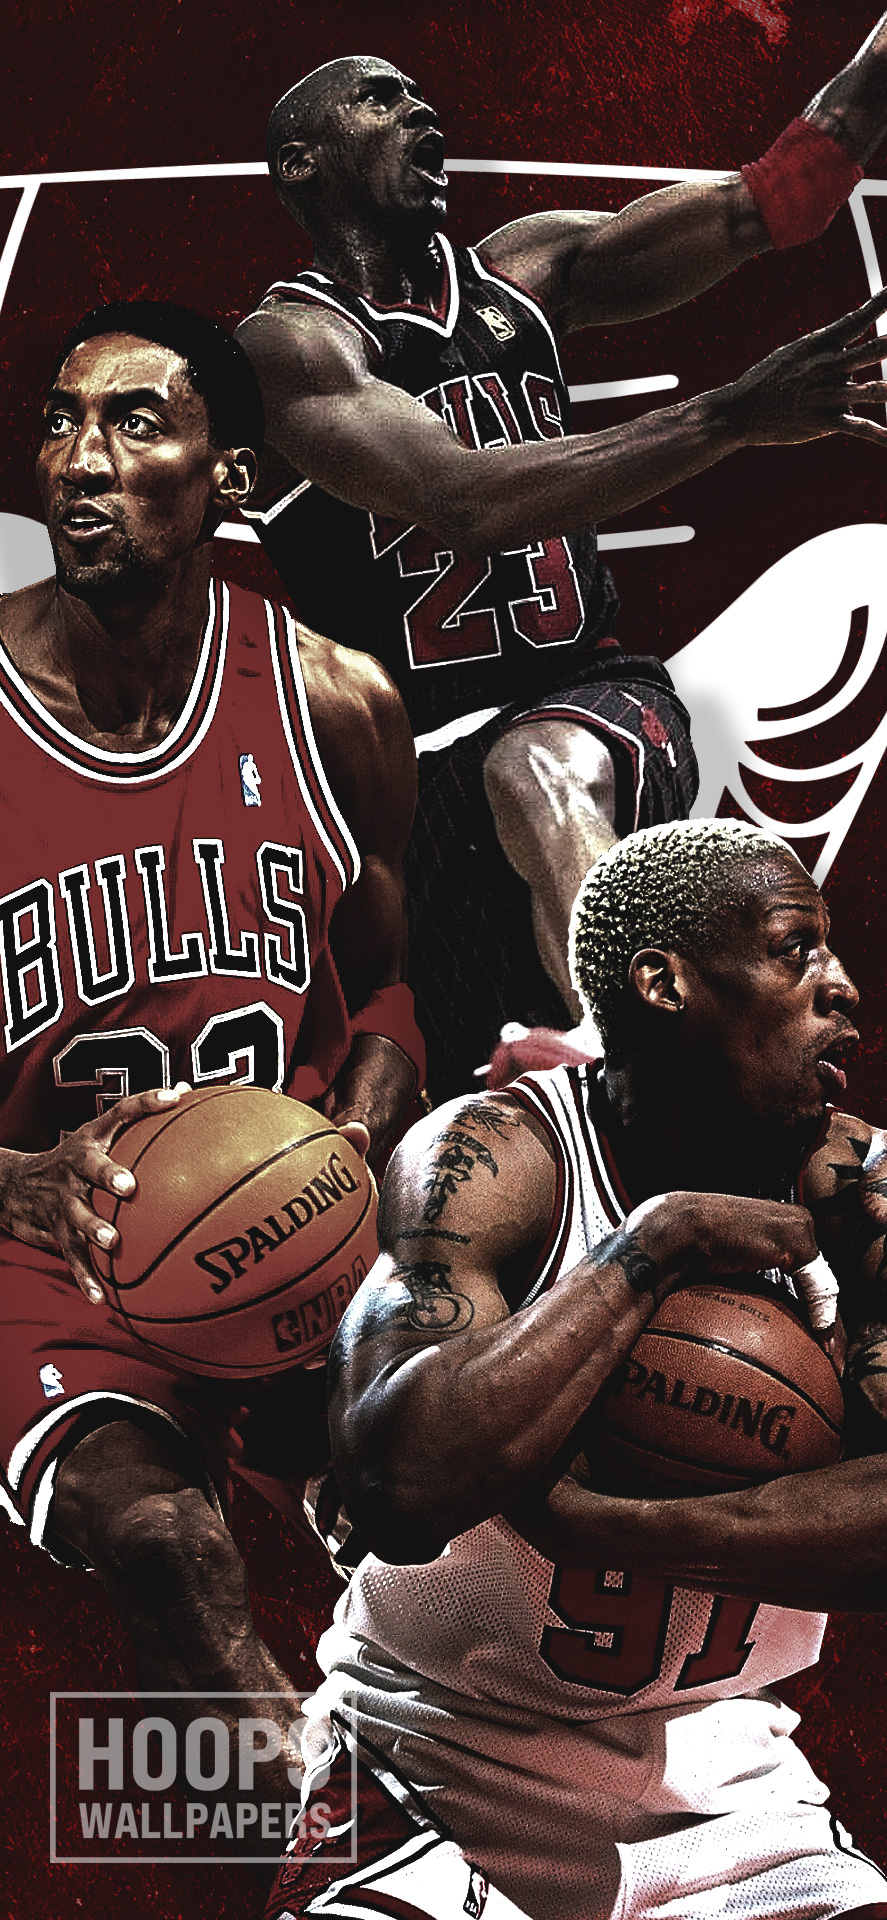 Hoopswallpapers Com Get The Latest Hd And Mobile Nba Wallpapers Today